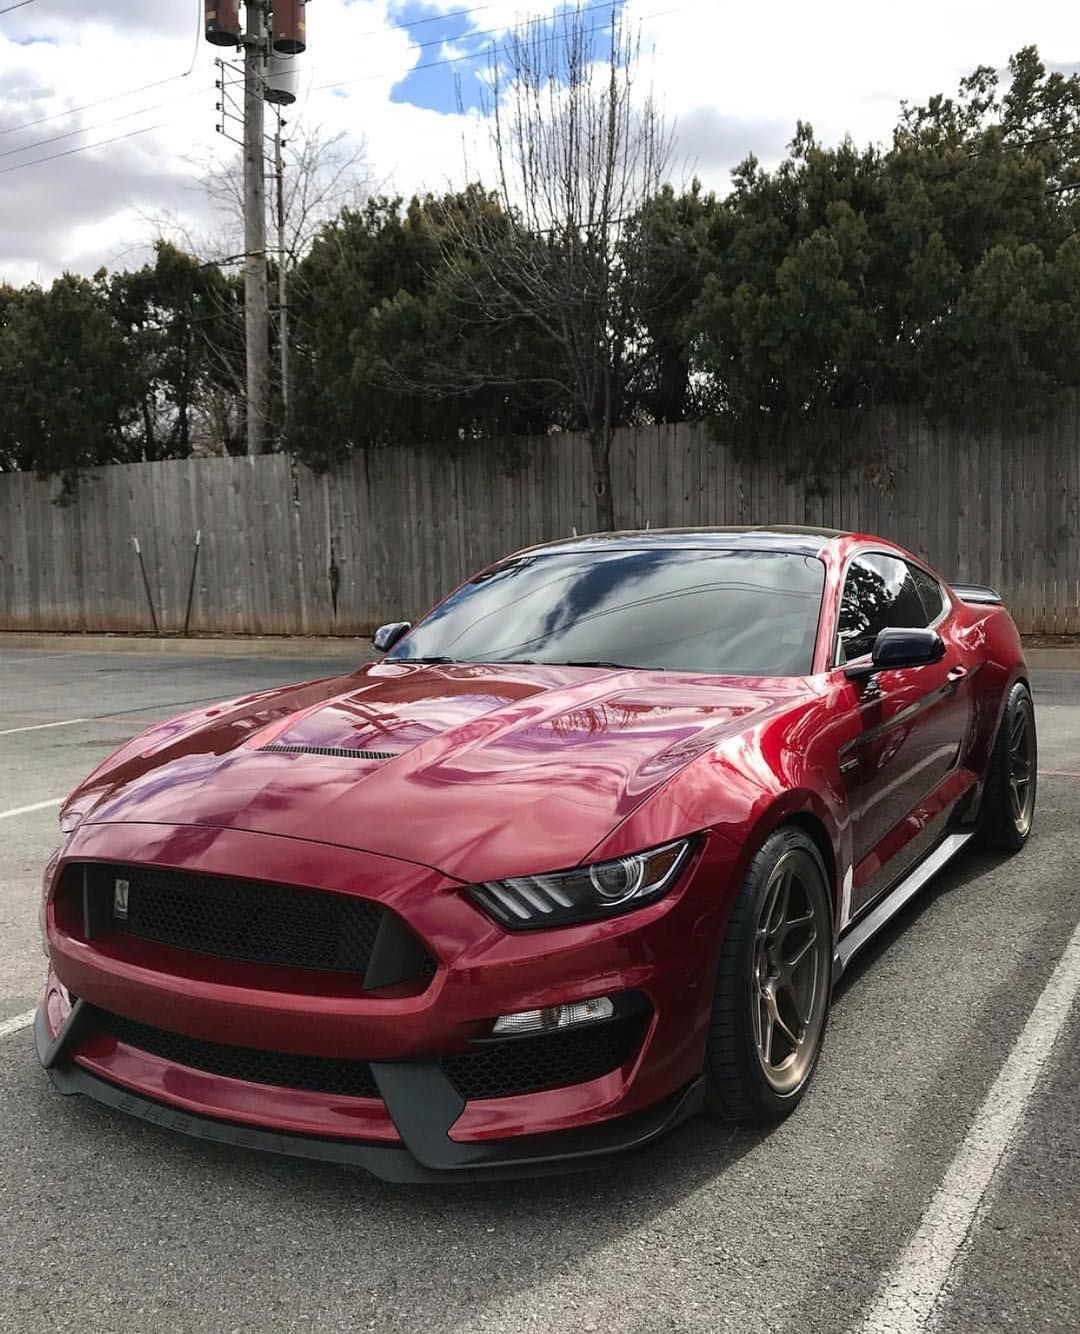 Ruby Red Rate This 1 10 Follow Socialmustang For More Mustangs Owner Ldy 9 Check Out These Pages Musclecarv Ford Mustang Shelby Gt Red Mustang Mustang